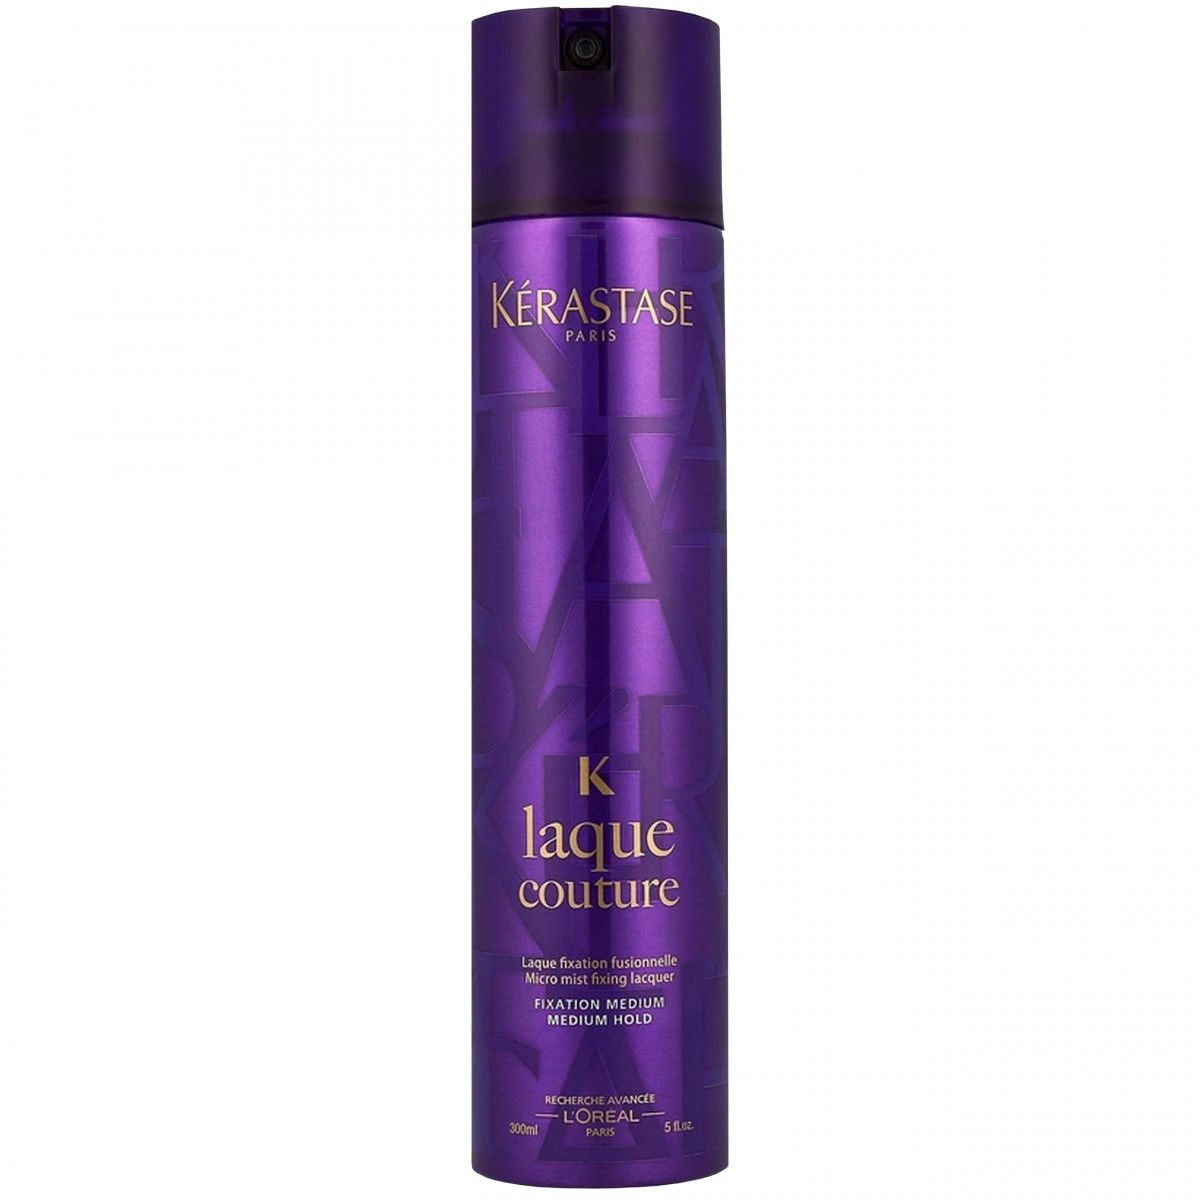 Kerastase Styling Laque Couture spray 300ml